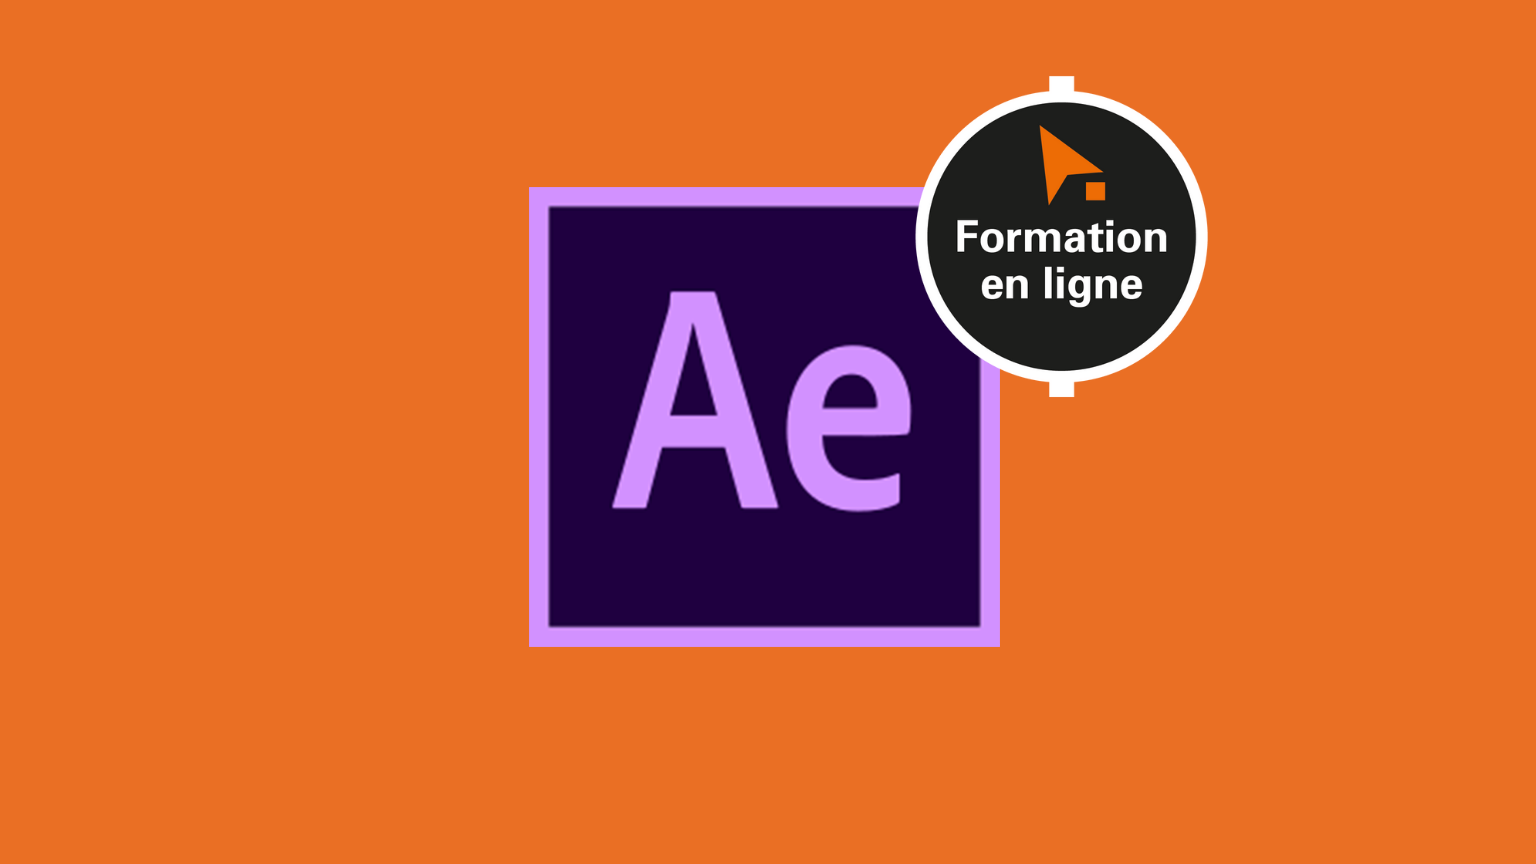 After Effects - Avancé Groupe 1